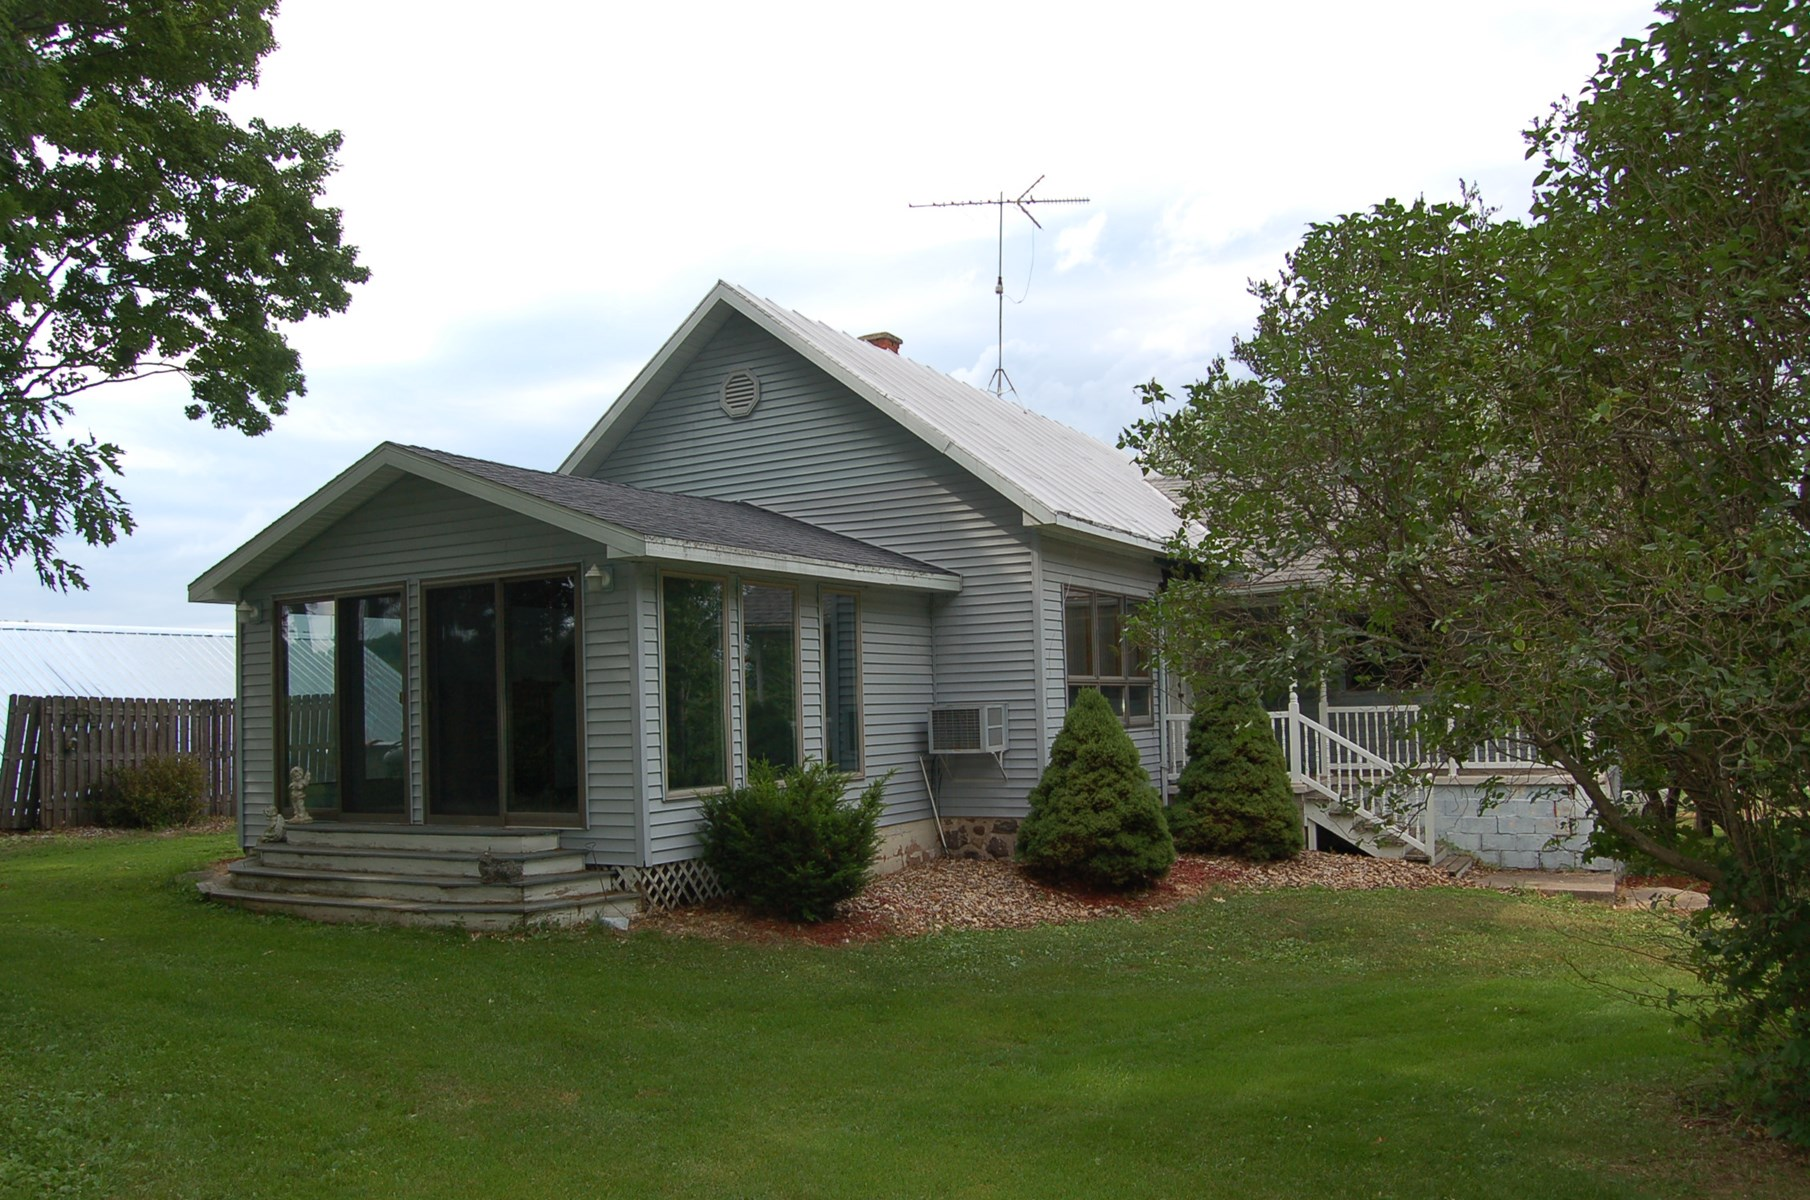 Home for Sale in New London, Waupaca County, WI